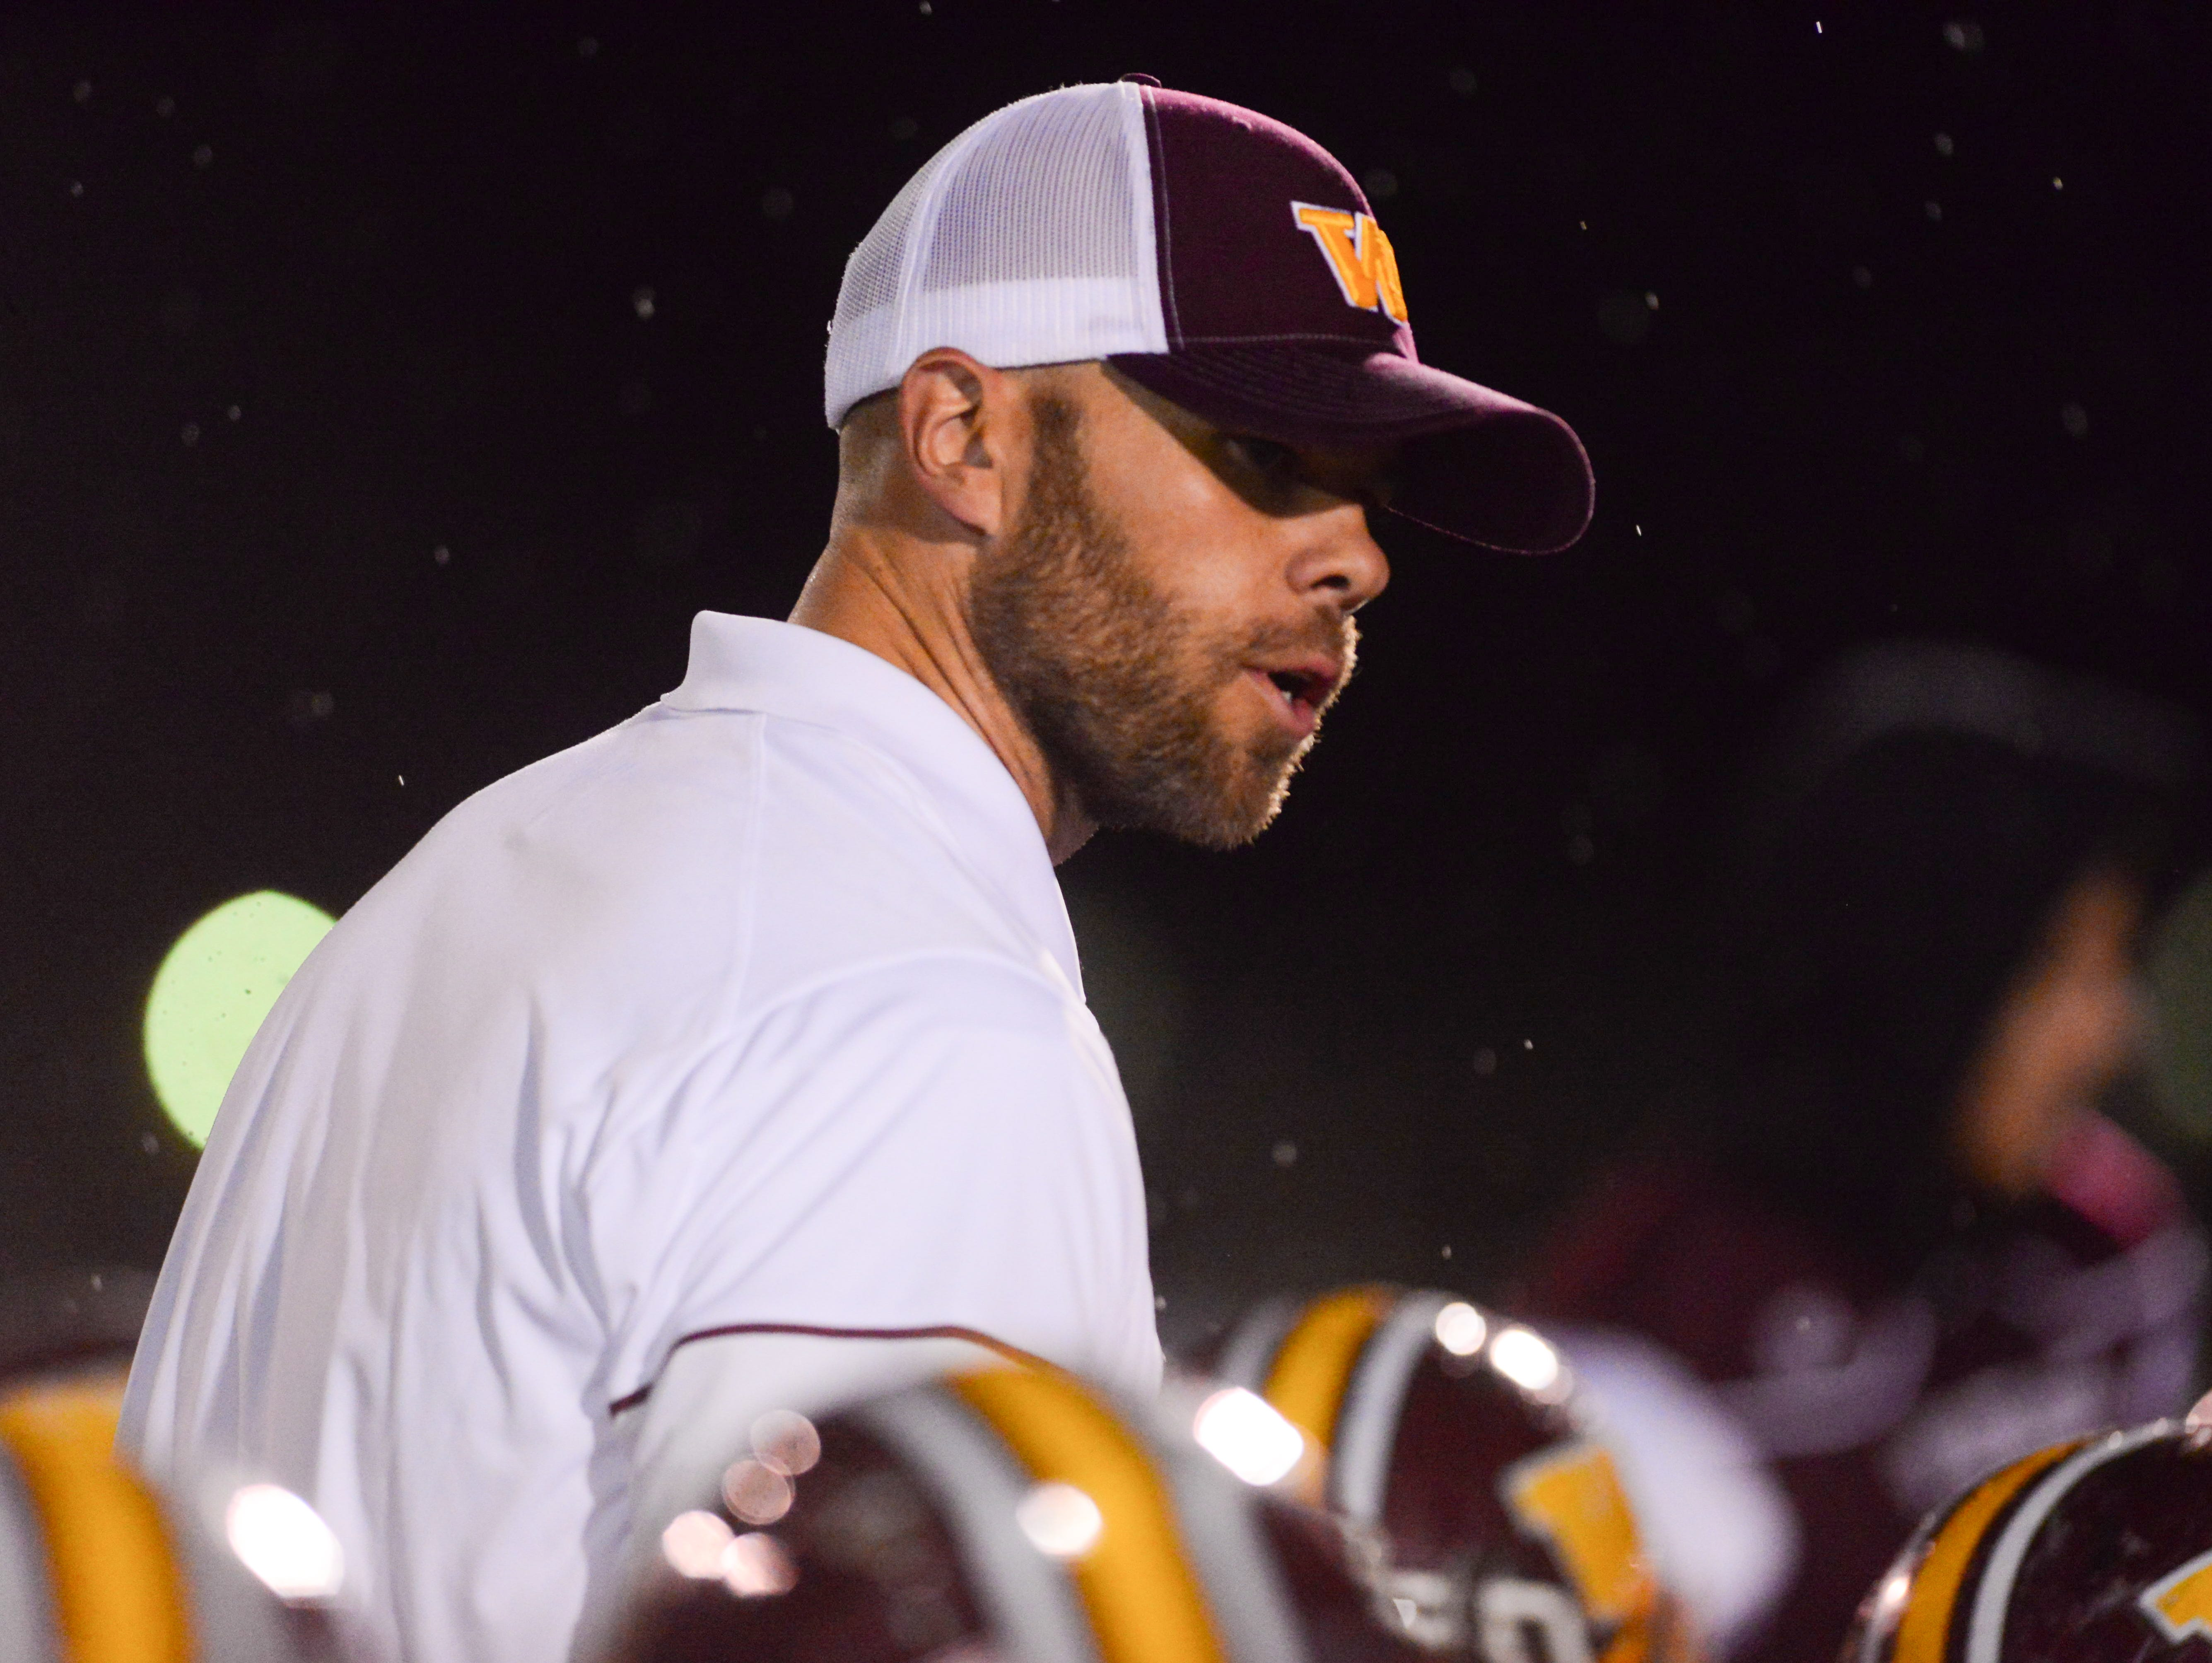 Windsor football coach Skylar Brower is pleased by the way his team has worn opponents down.